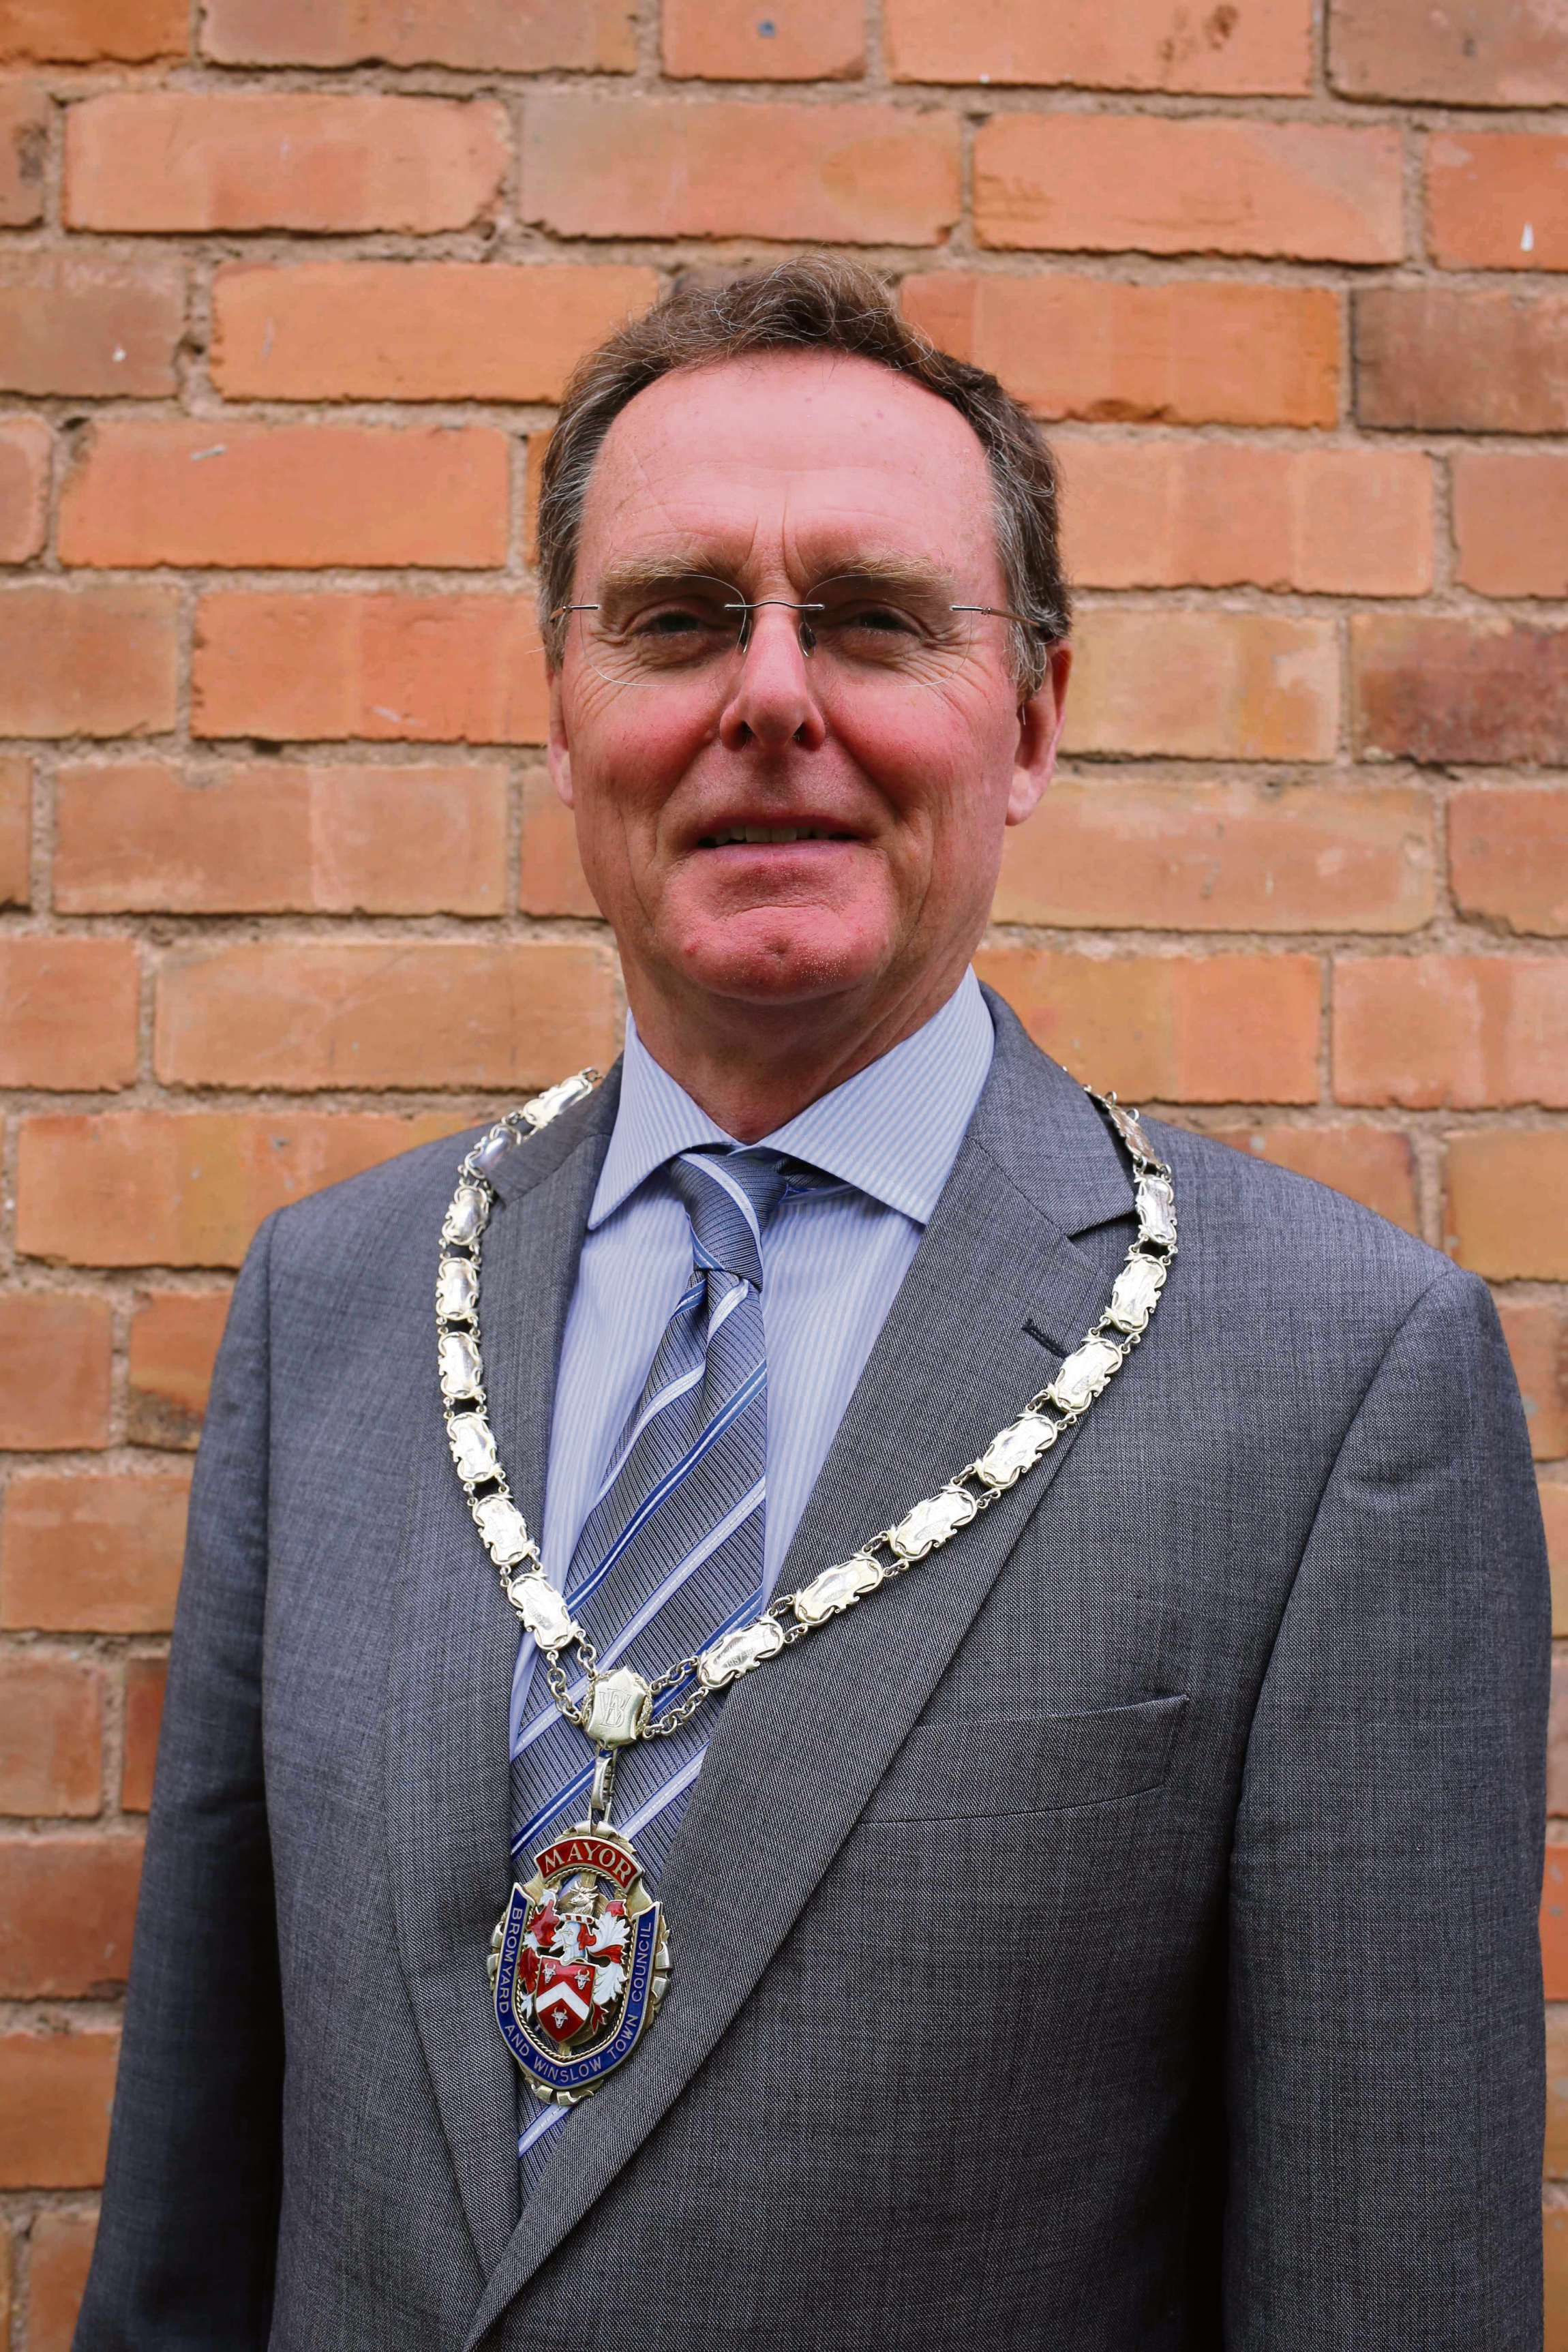 Councillor Alan Seldon is the new Mayor of Bromyard.